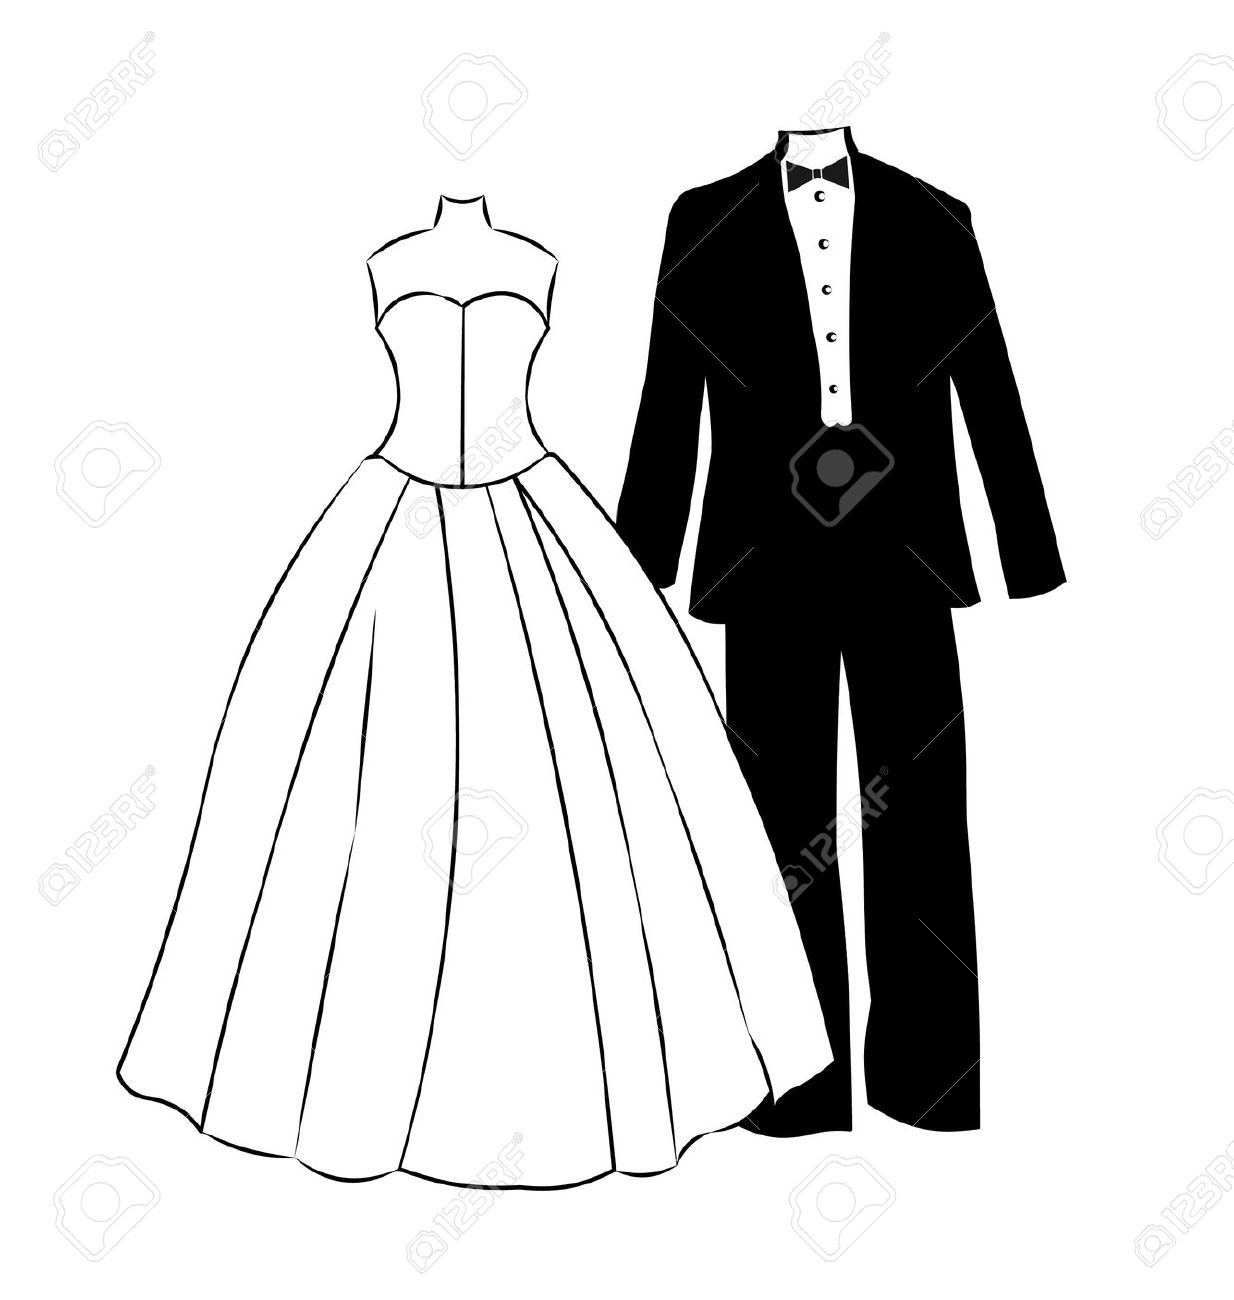 Cartoon wedding dress clipart.